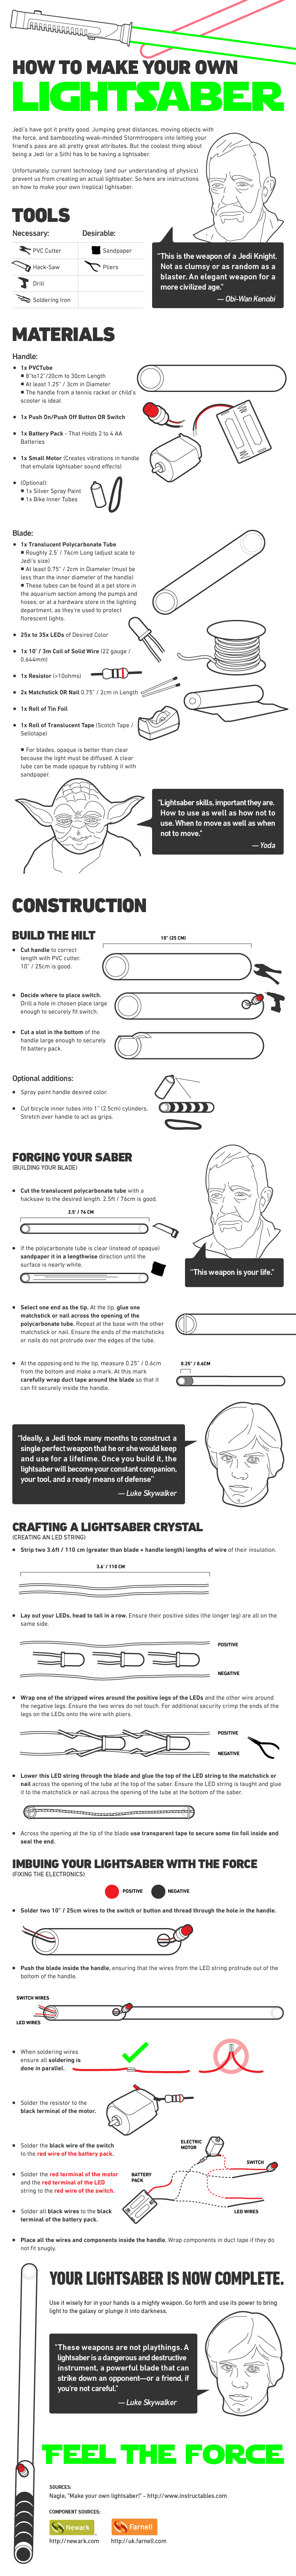 lightsaber tutorial